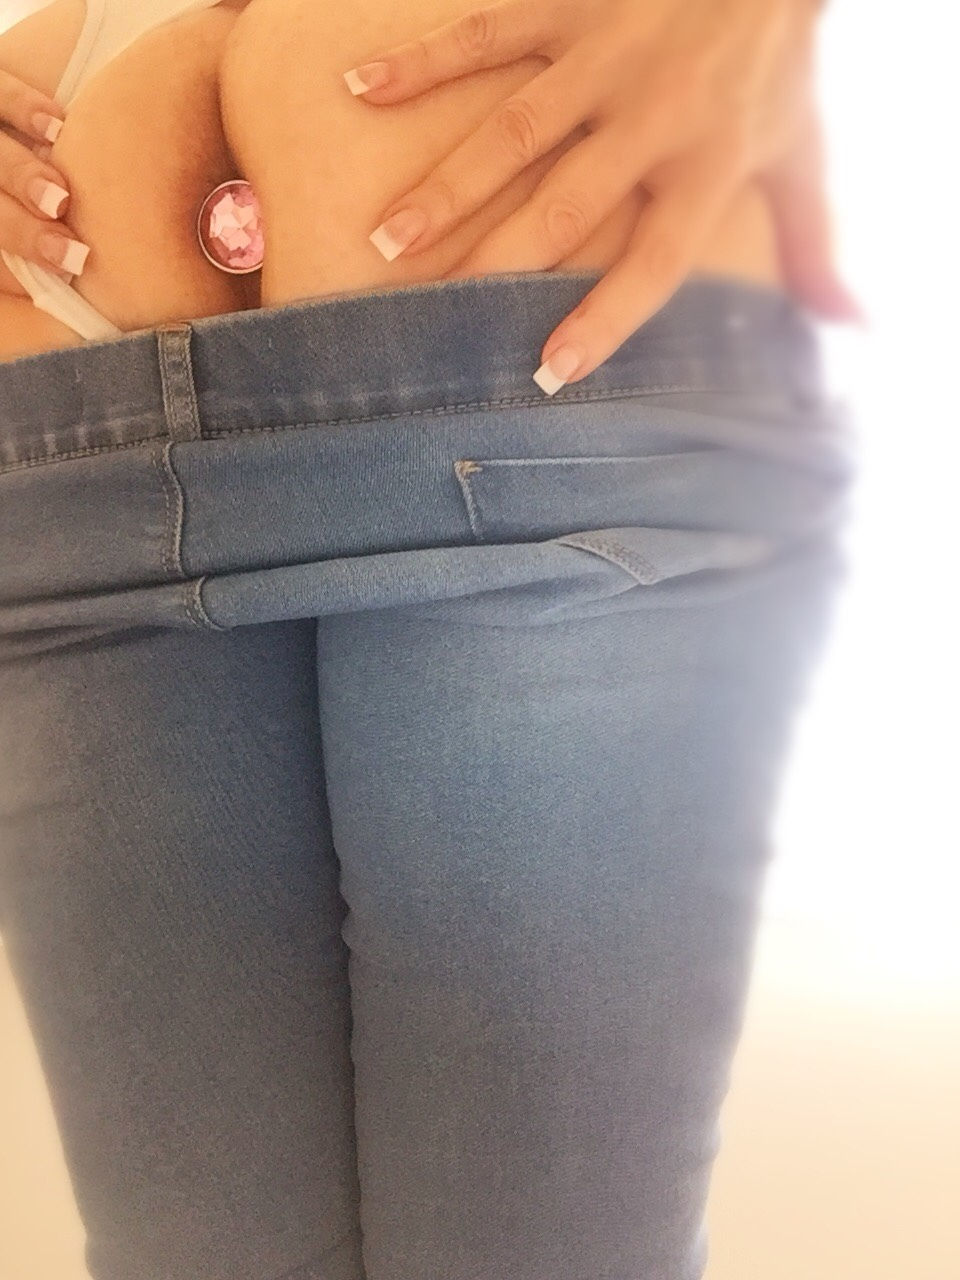 Buttplug Jeans